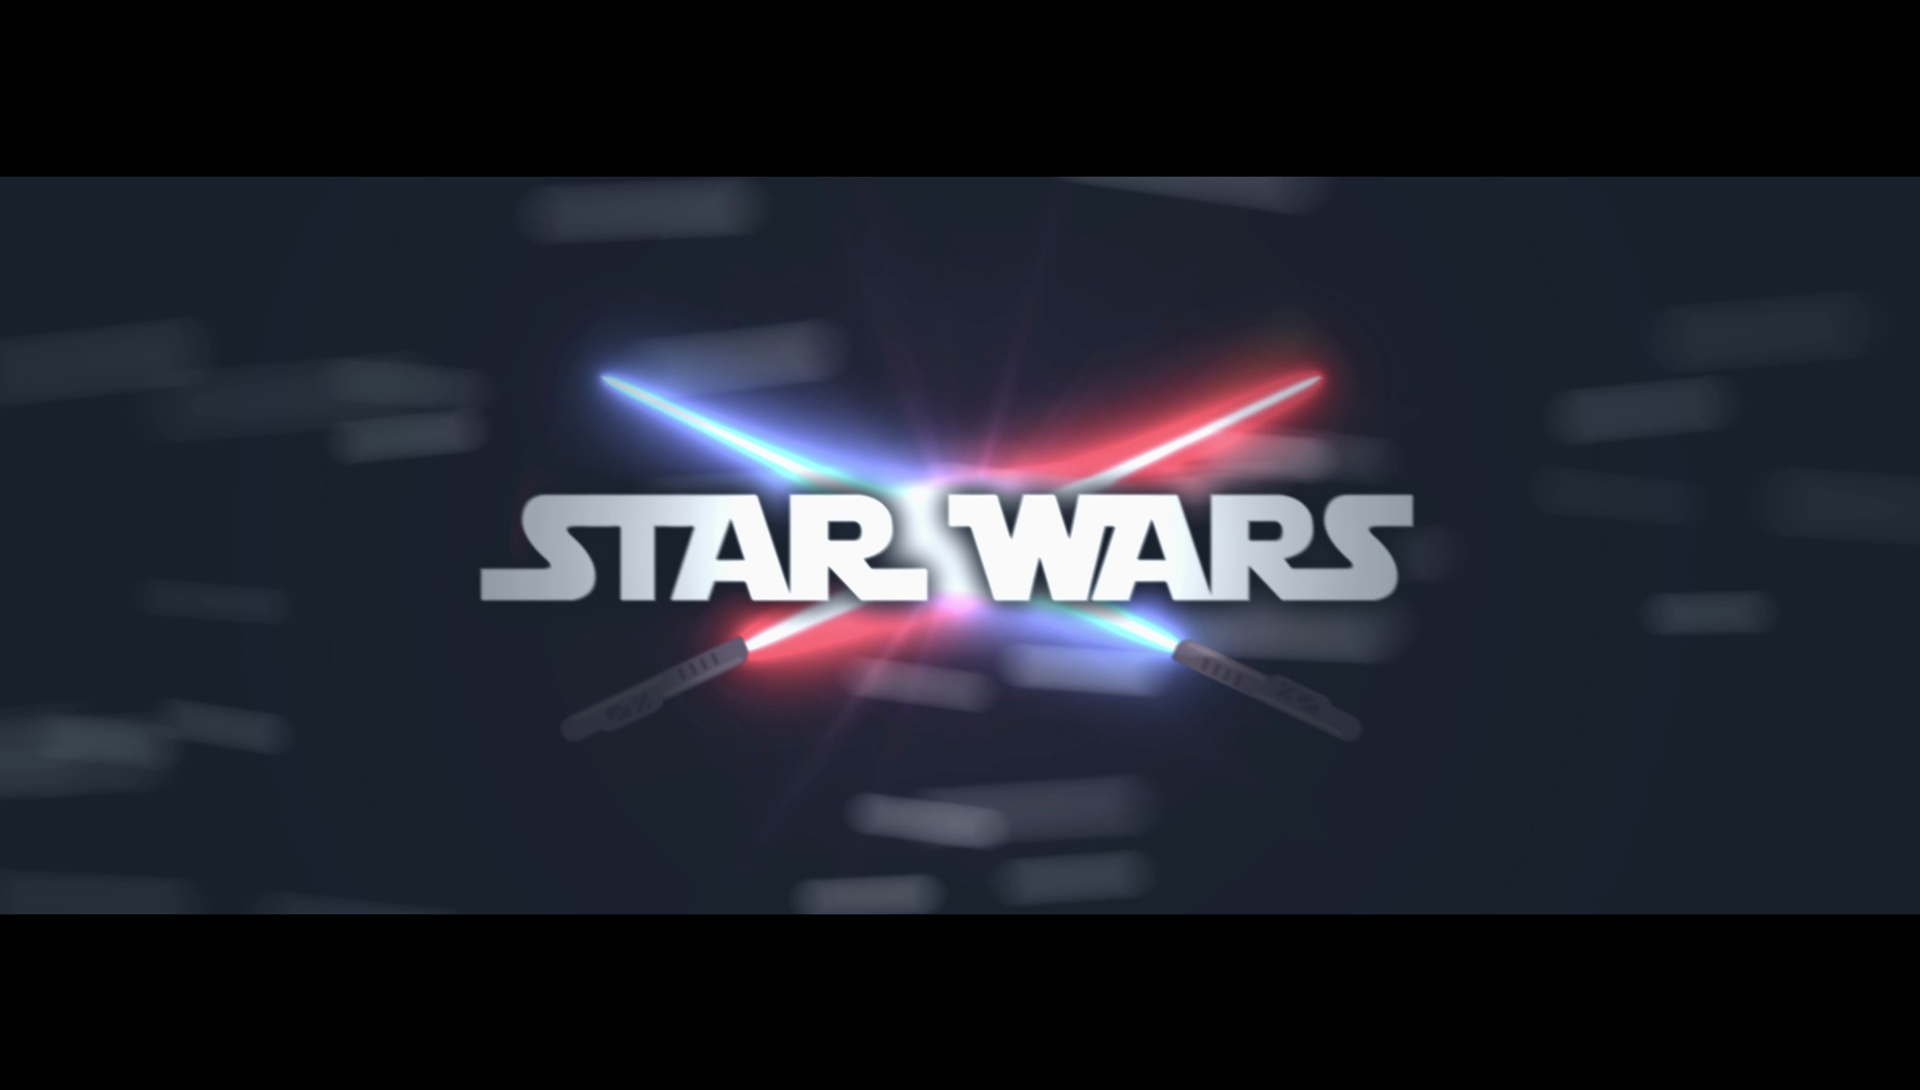 star wars intro template after effects. Black Bedroom Furniture Sets. Home Design Ideas